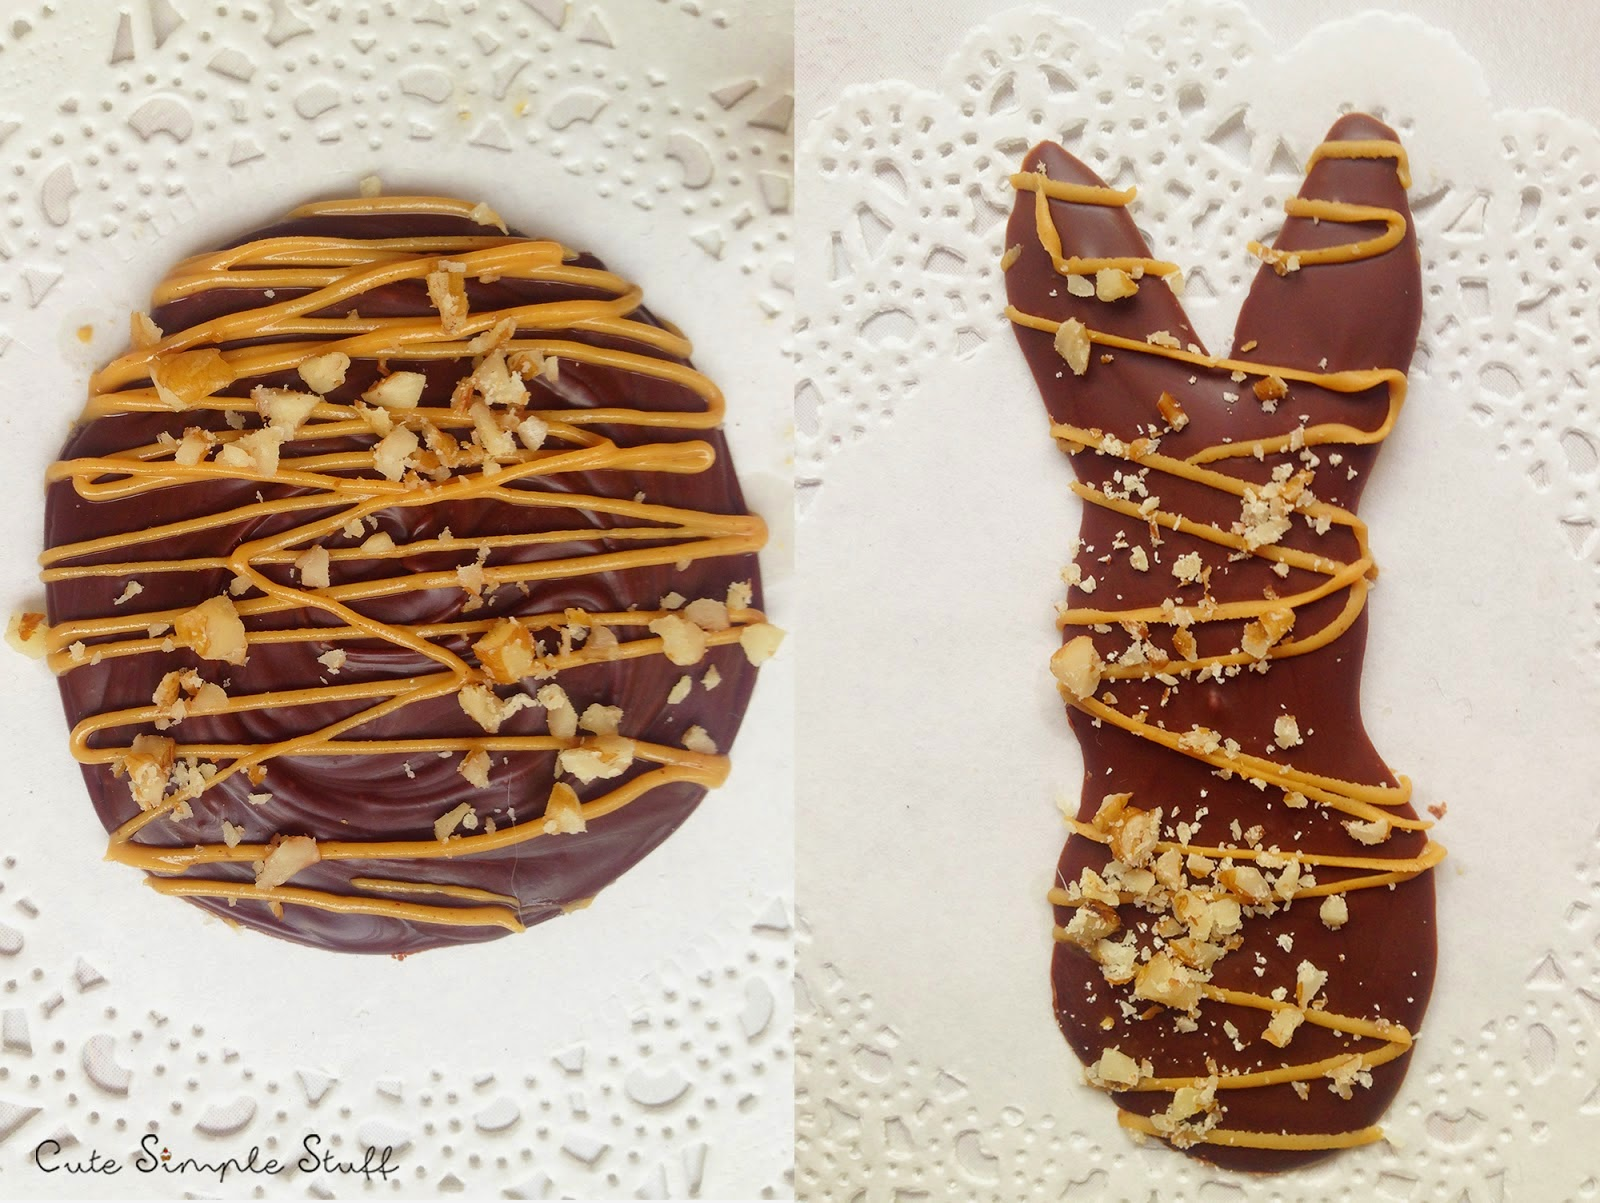 http://www.cutesimplestuff.com/2015/03/easy-chocolate-easter-bunny-treat.html